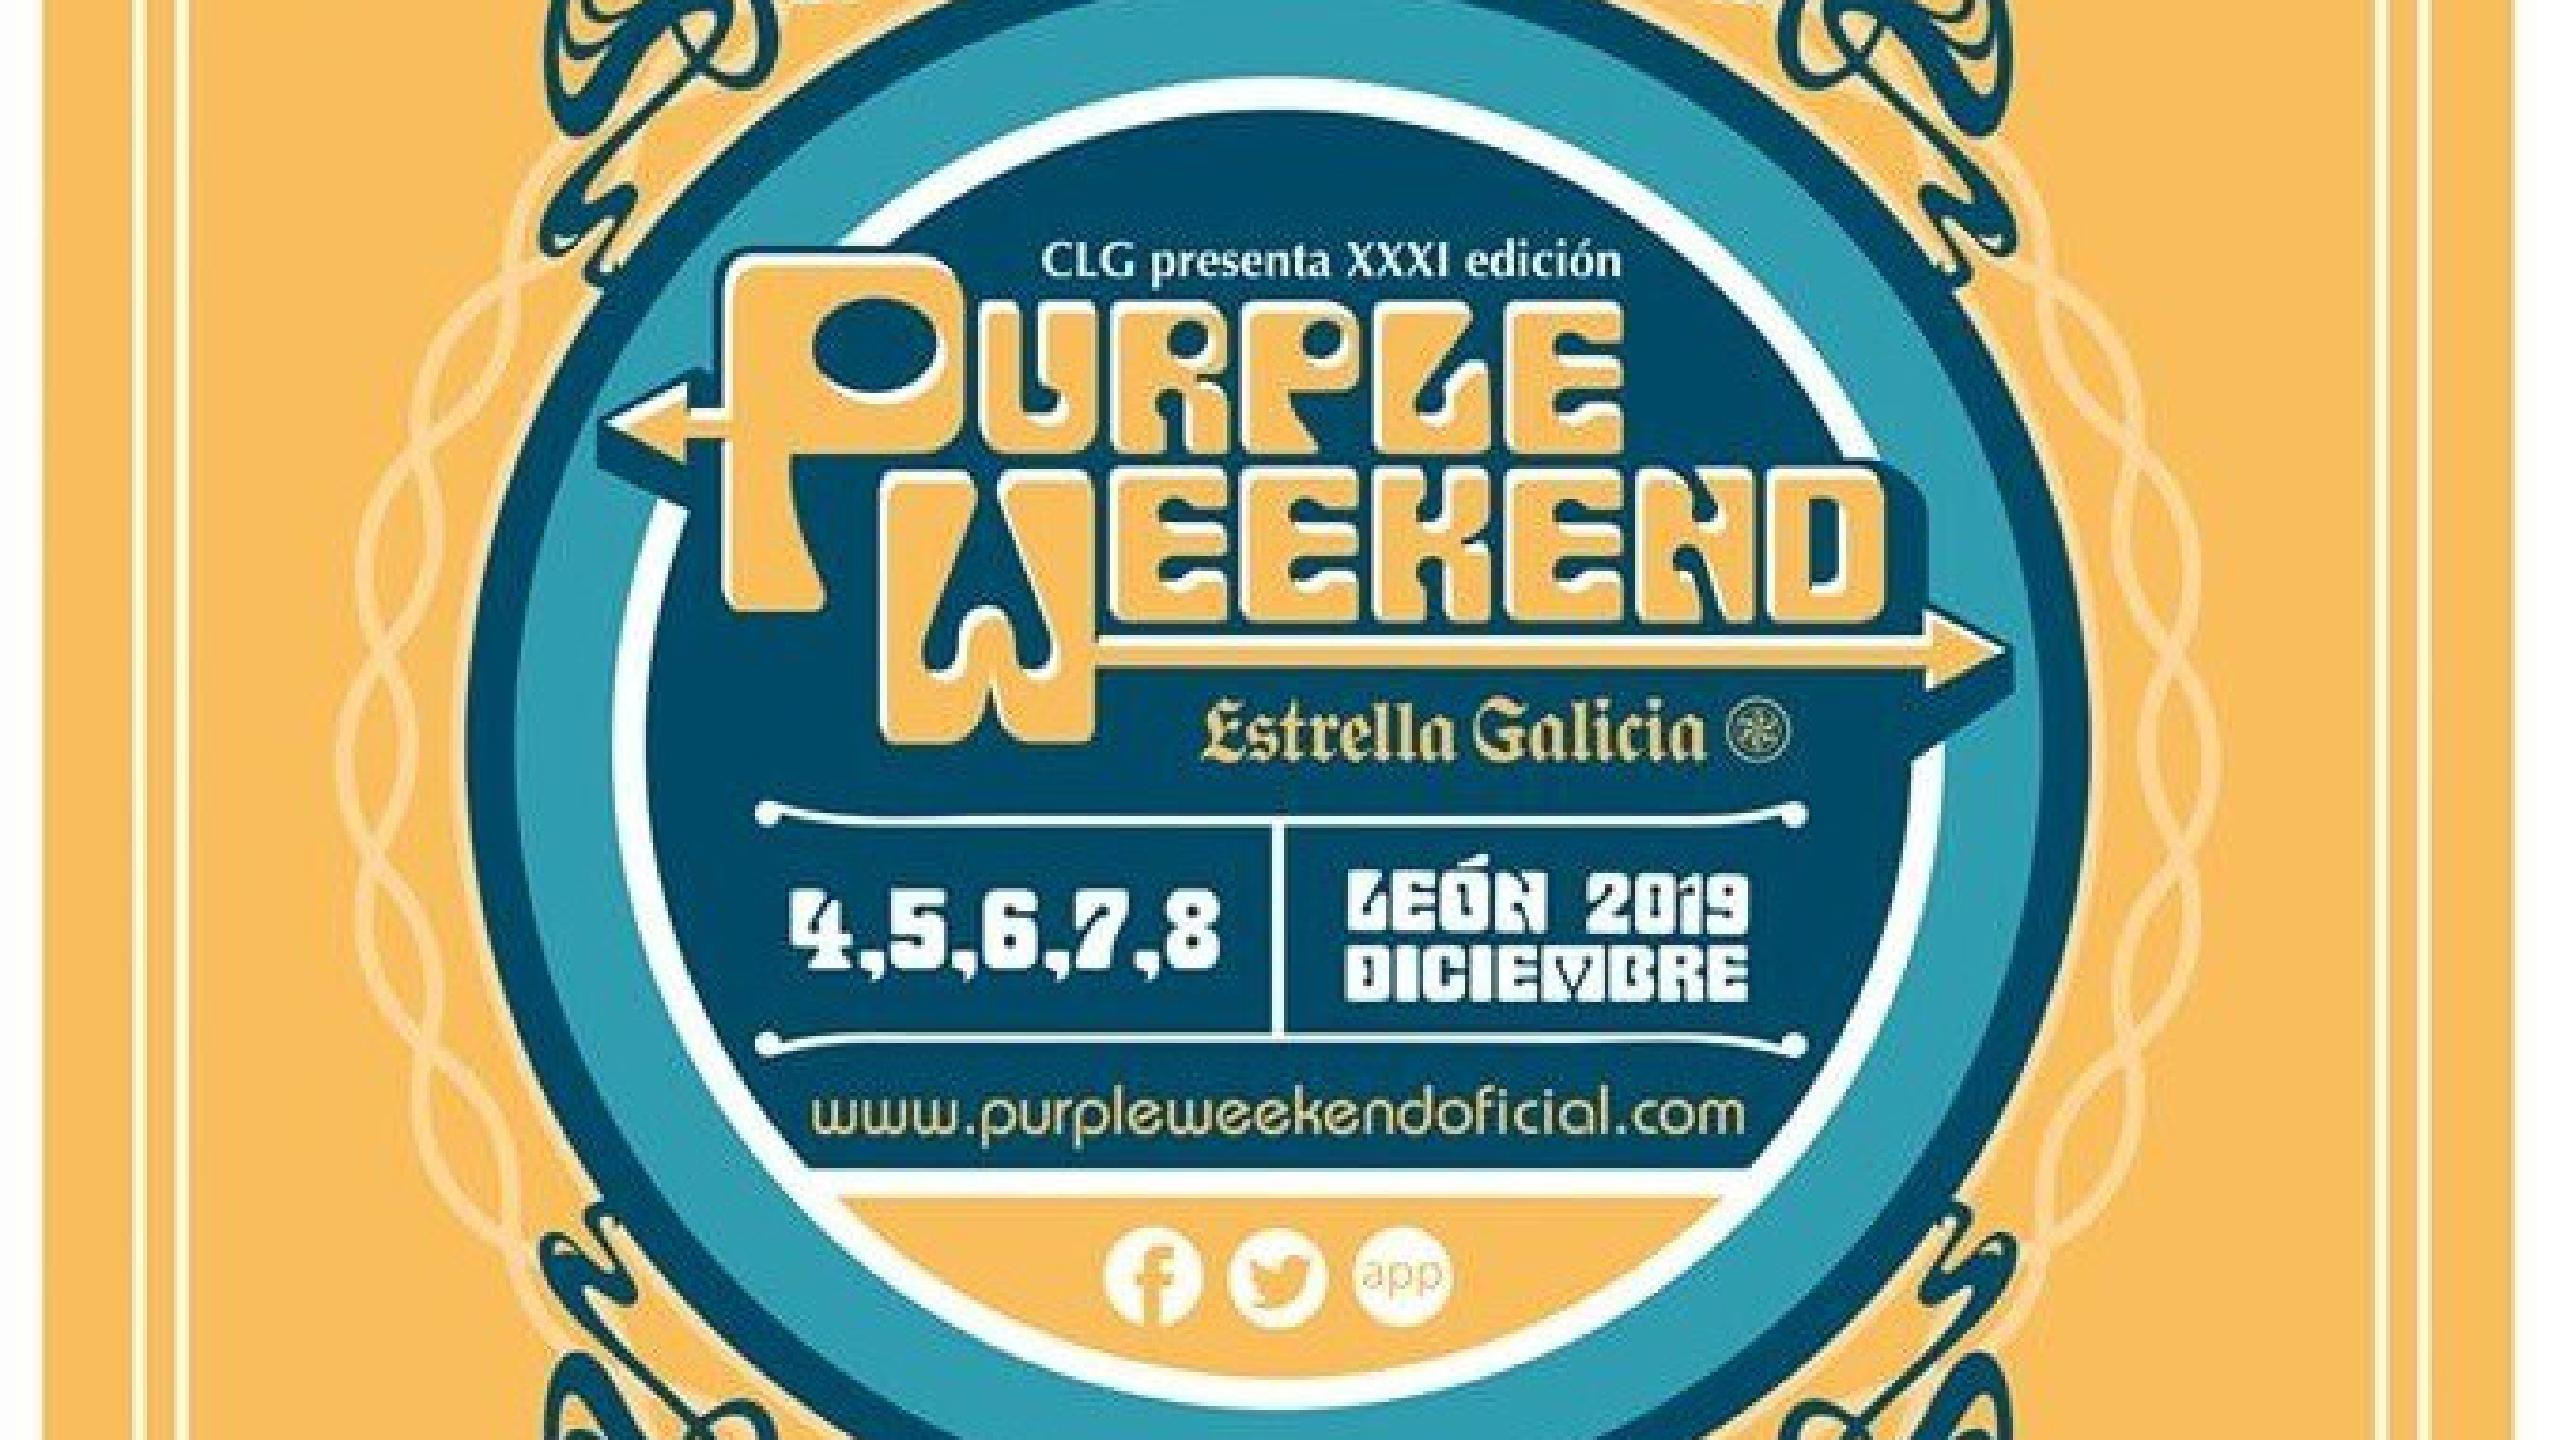 https://cdn.wegow.com/media/companies/purple-weekend-2019/purple-weekend-2019-1573130423.36.2560x1440.jpg